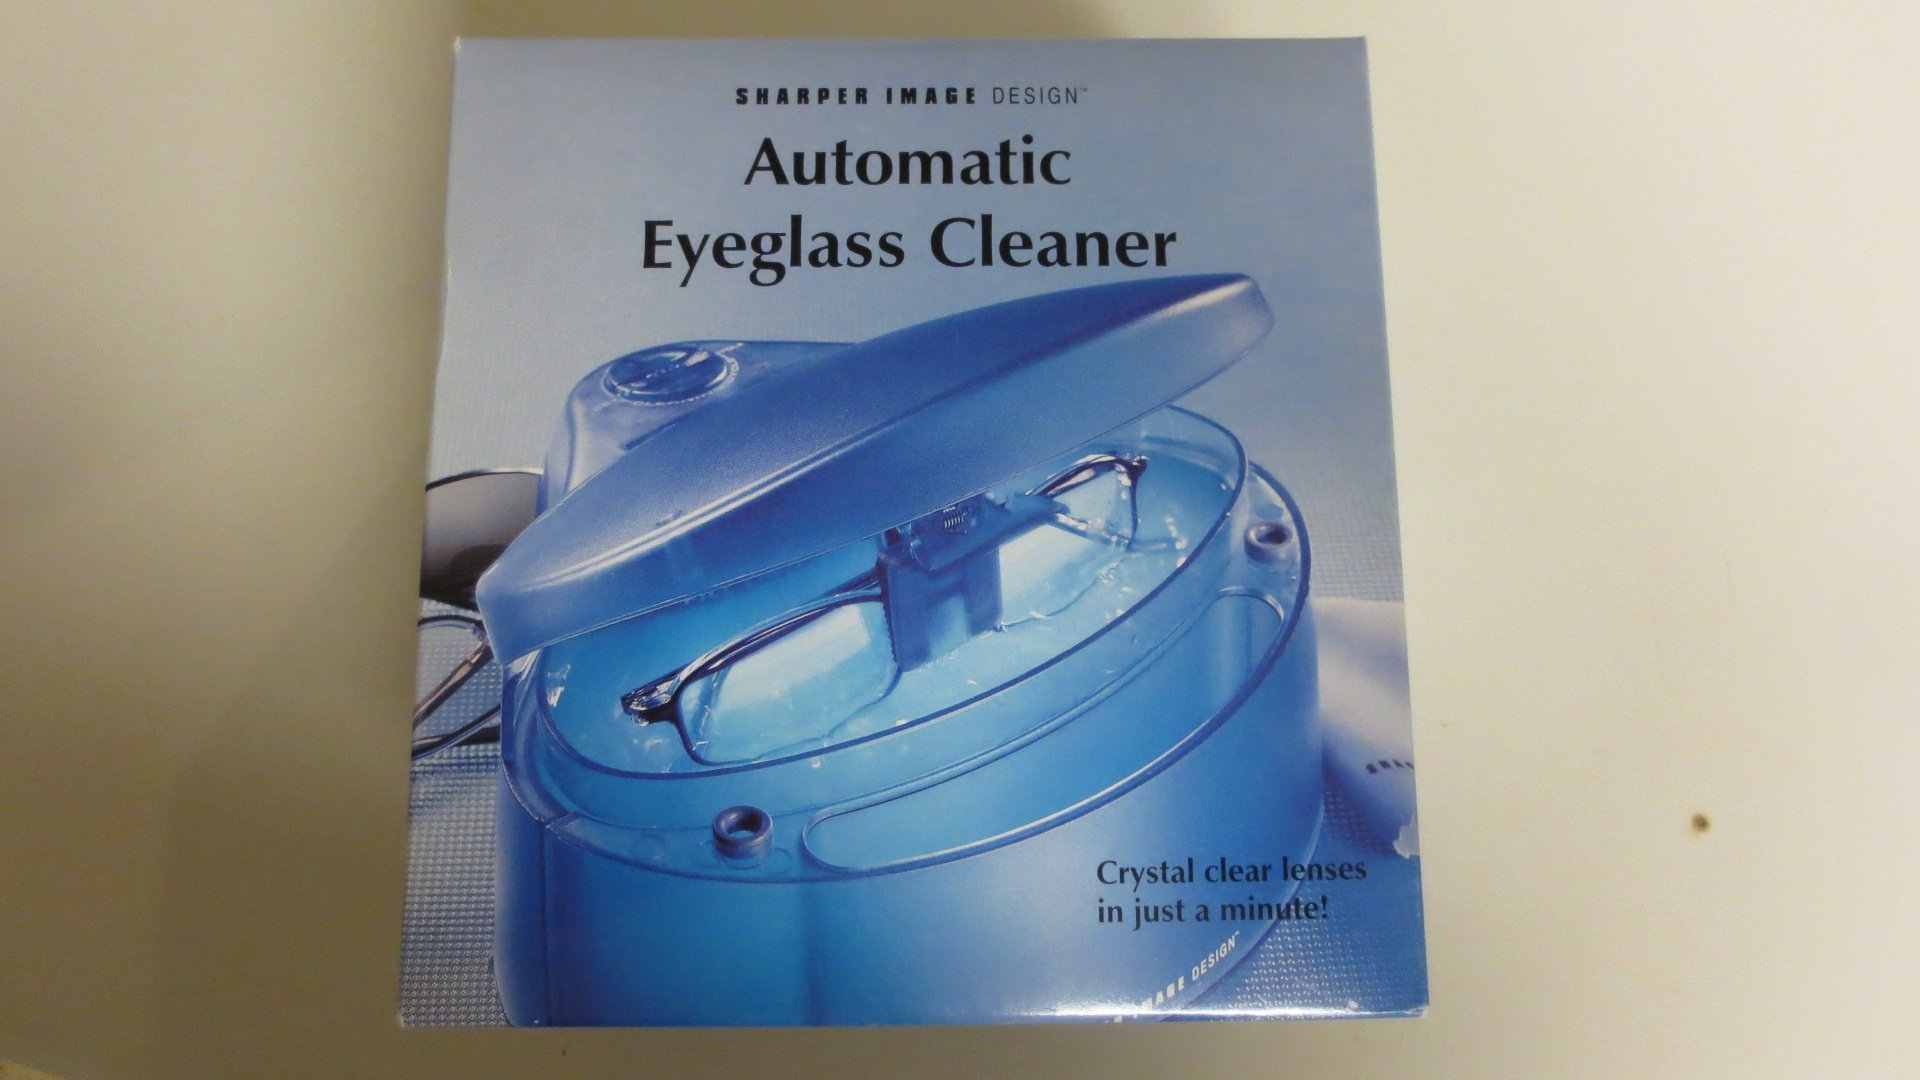 Sharper Image Automatic Eyeglass Cleaner SI632 - No Soultion Included  by Sharper Image (Image #2)